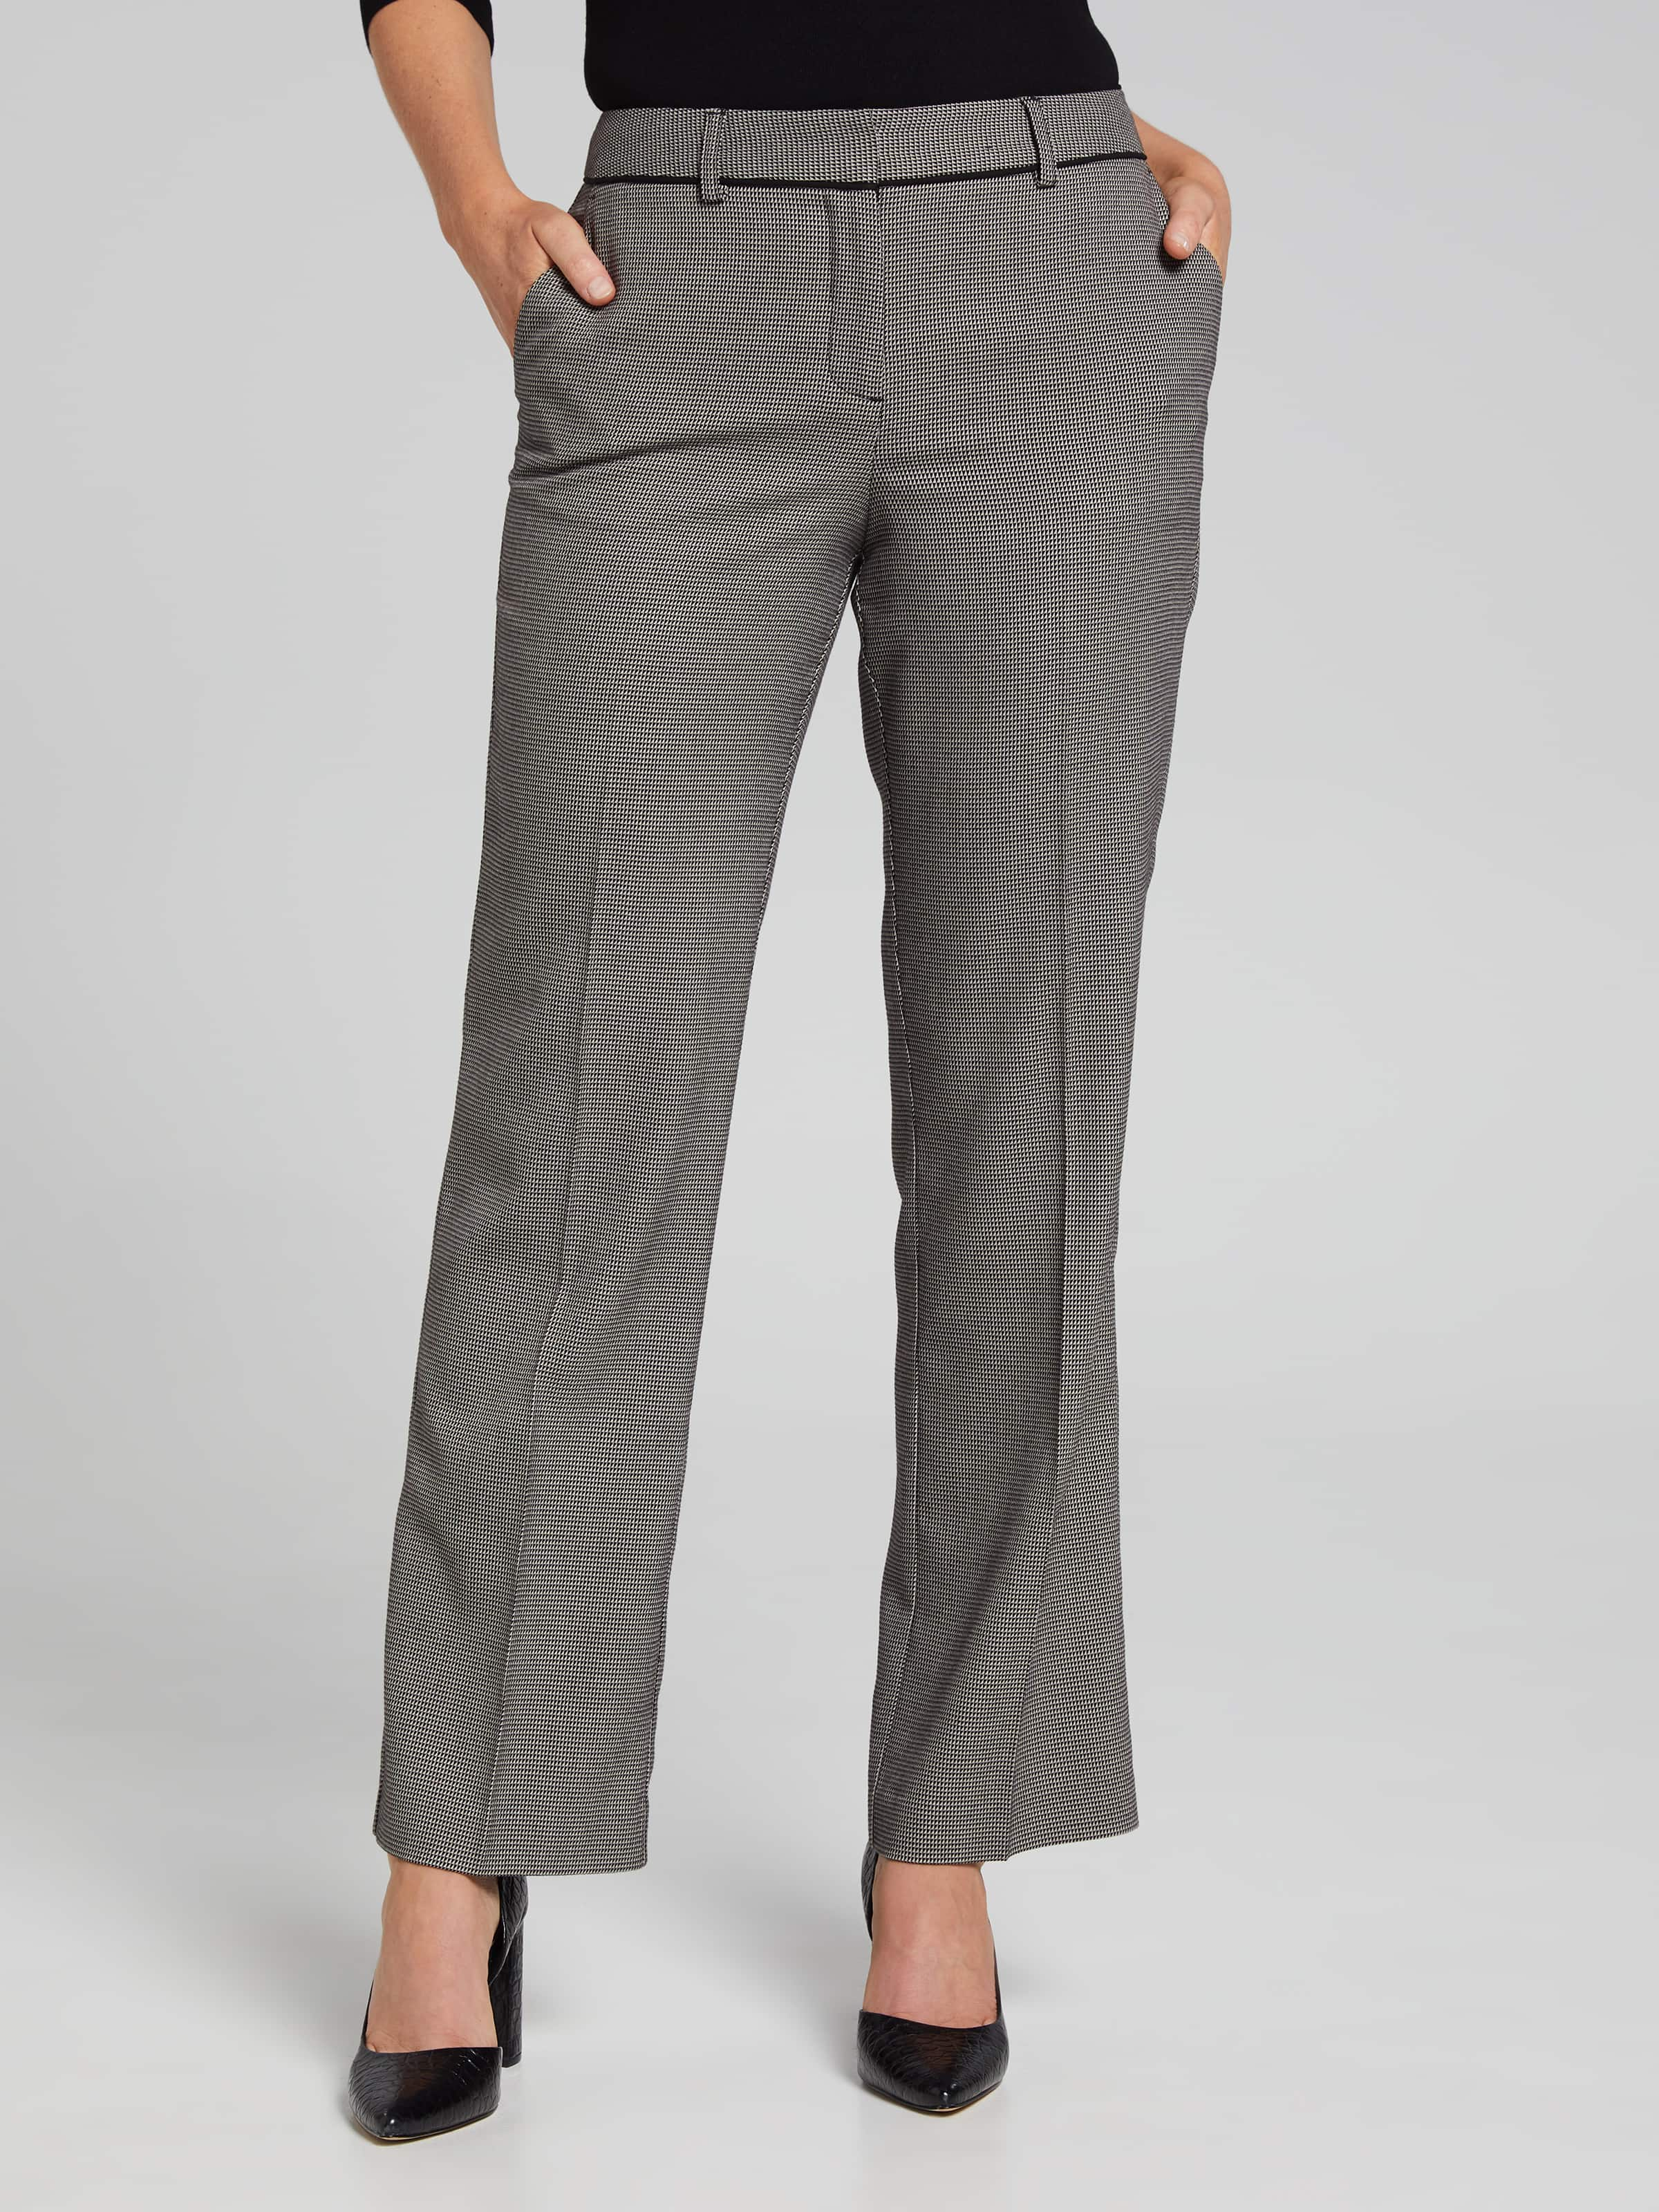 Image of Jacqui E Australia Jacqui E Geo Piped Wide Leg Suit Pant